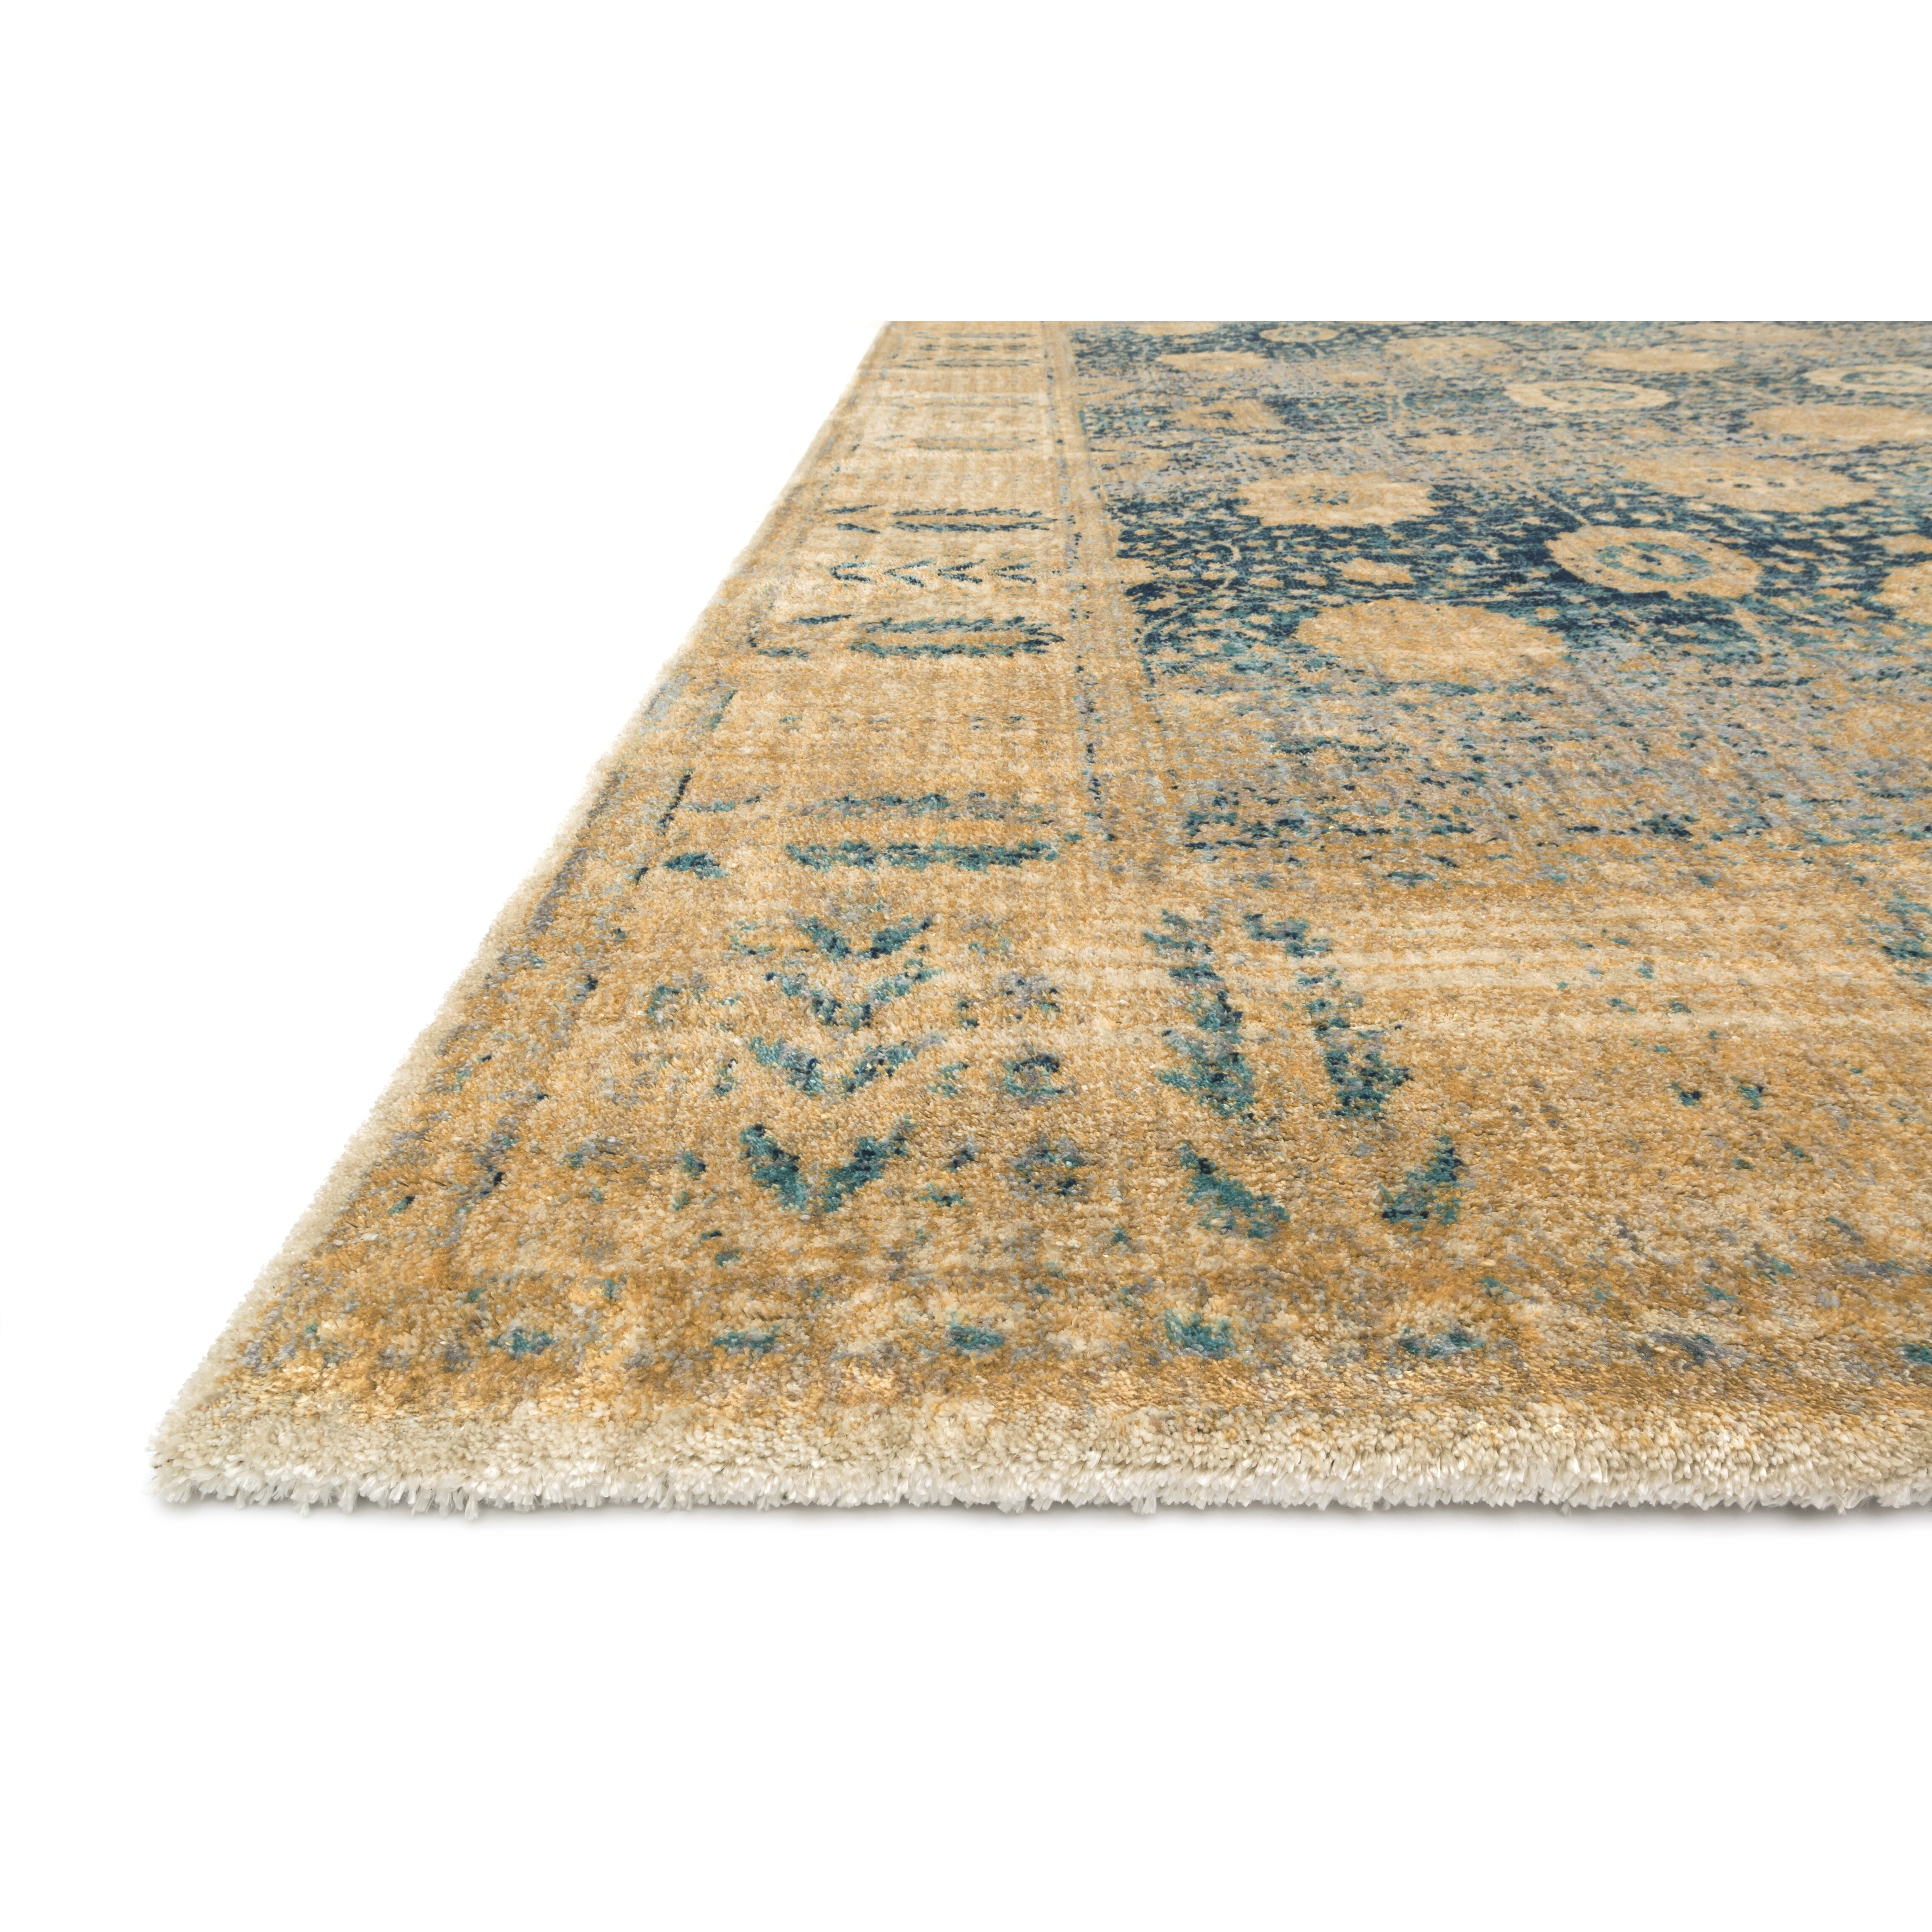 Rug Runner Gold: Loloi Rugs Anastasia Blue/Gold Area Rug & Reviews